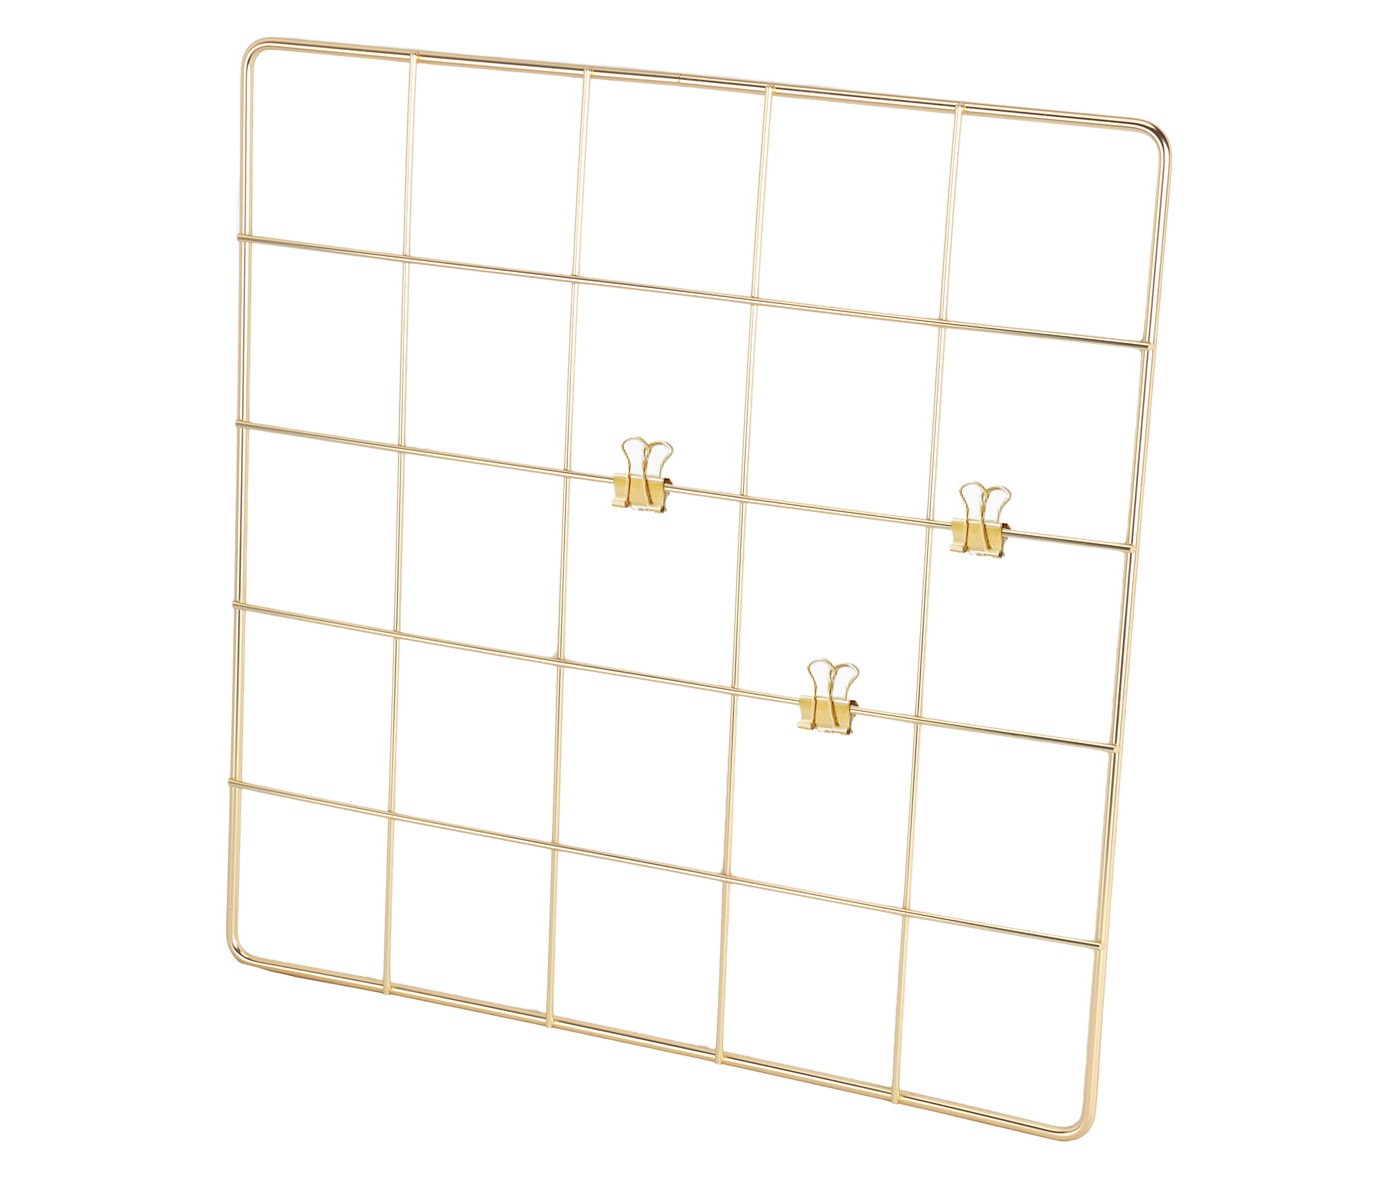 Target Threshold Wall Grid, Gold